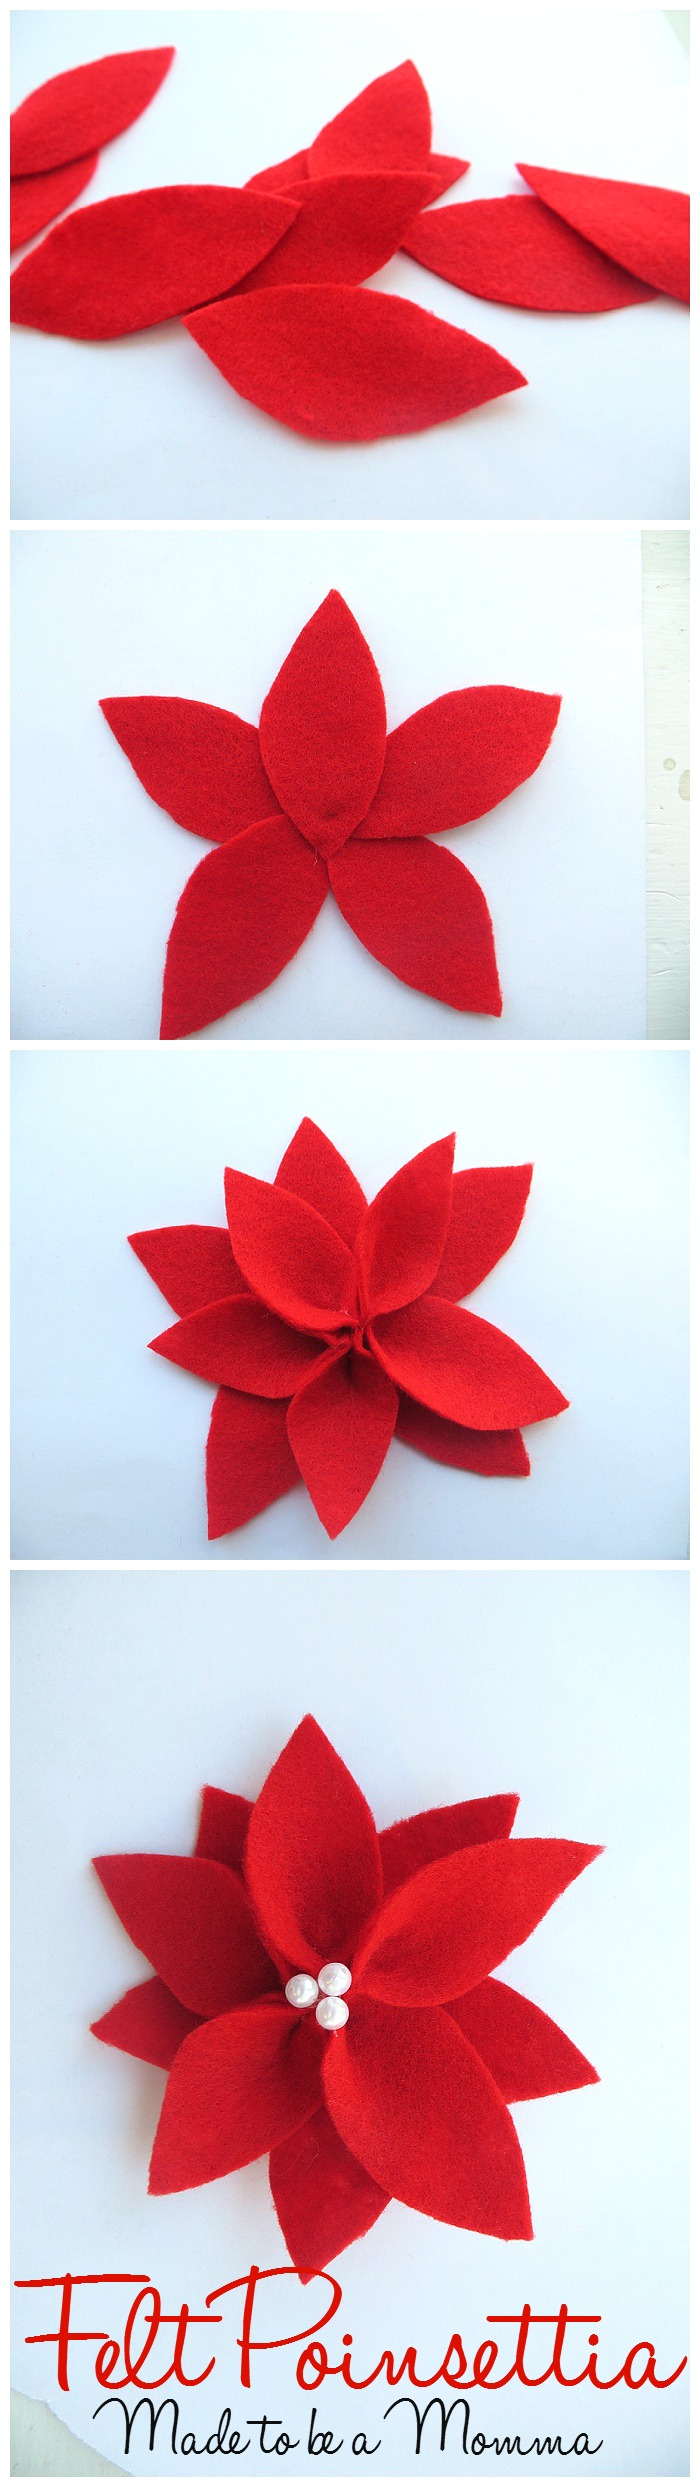 Felt Pointsettia Collage